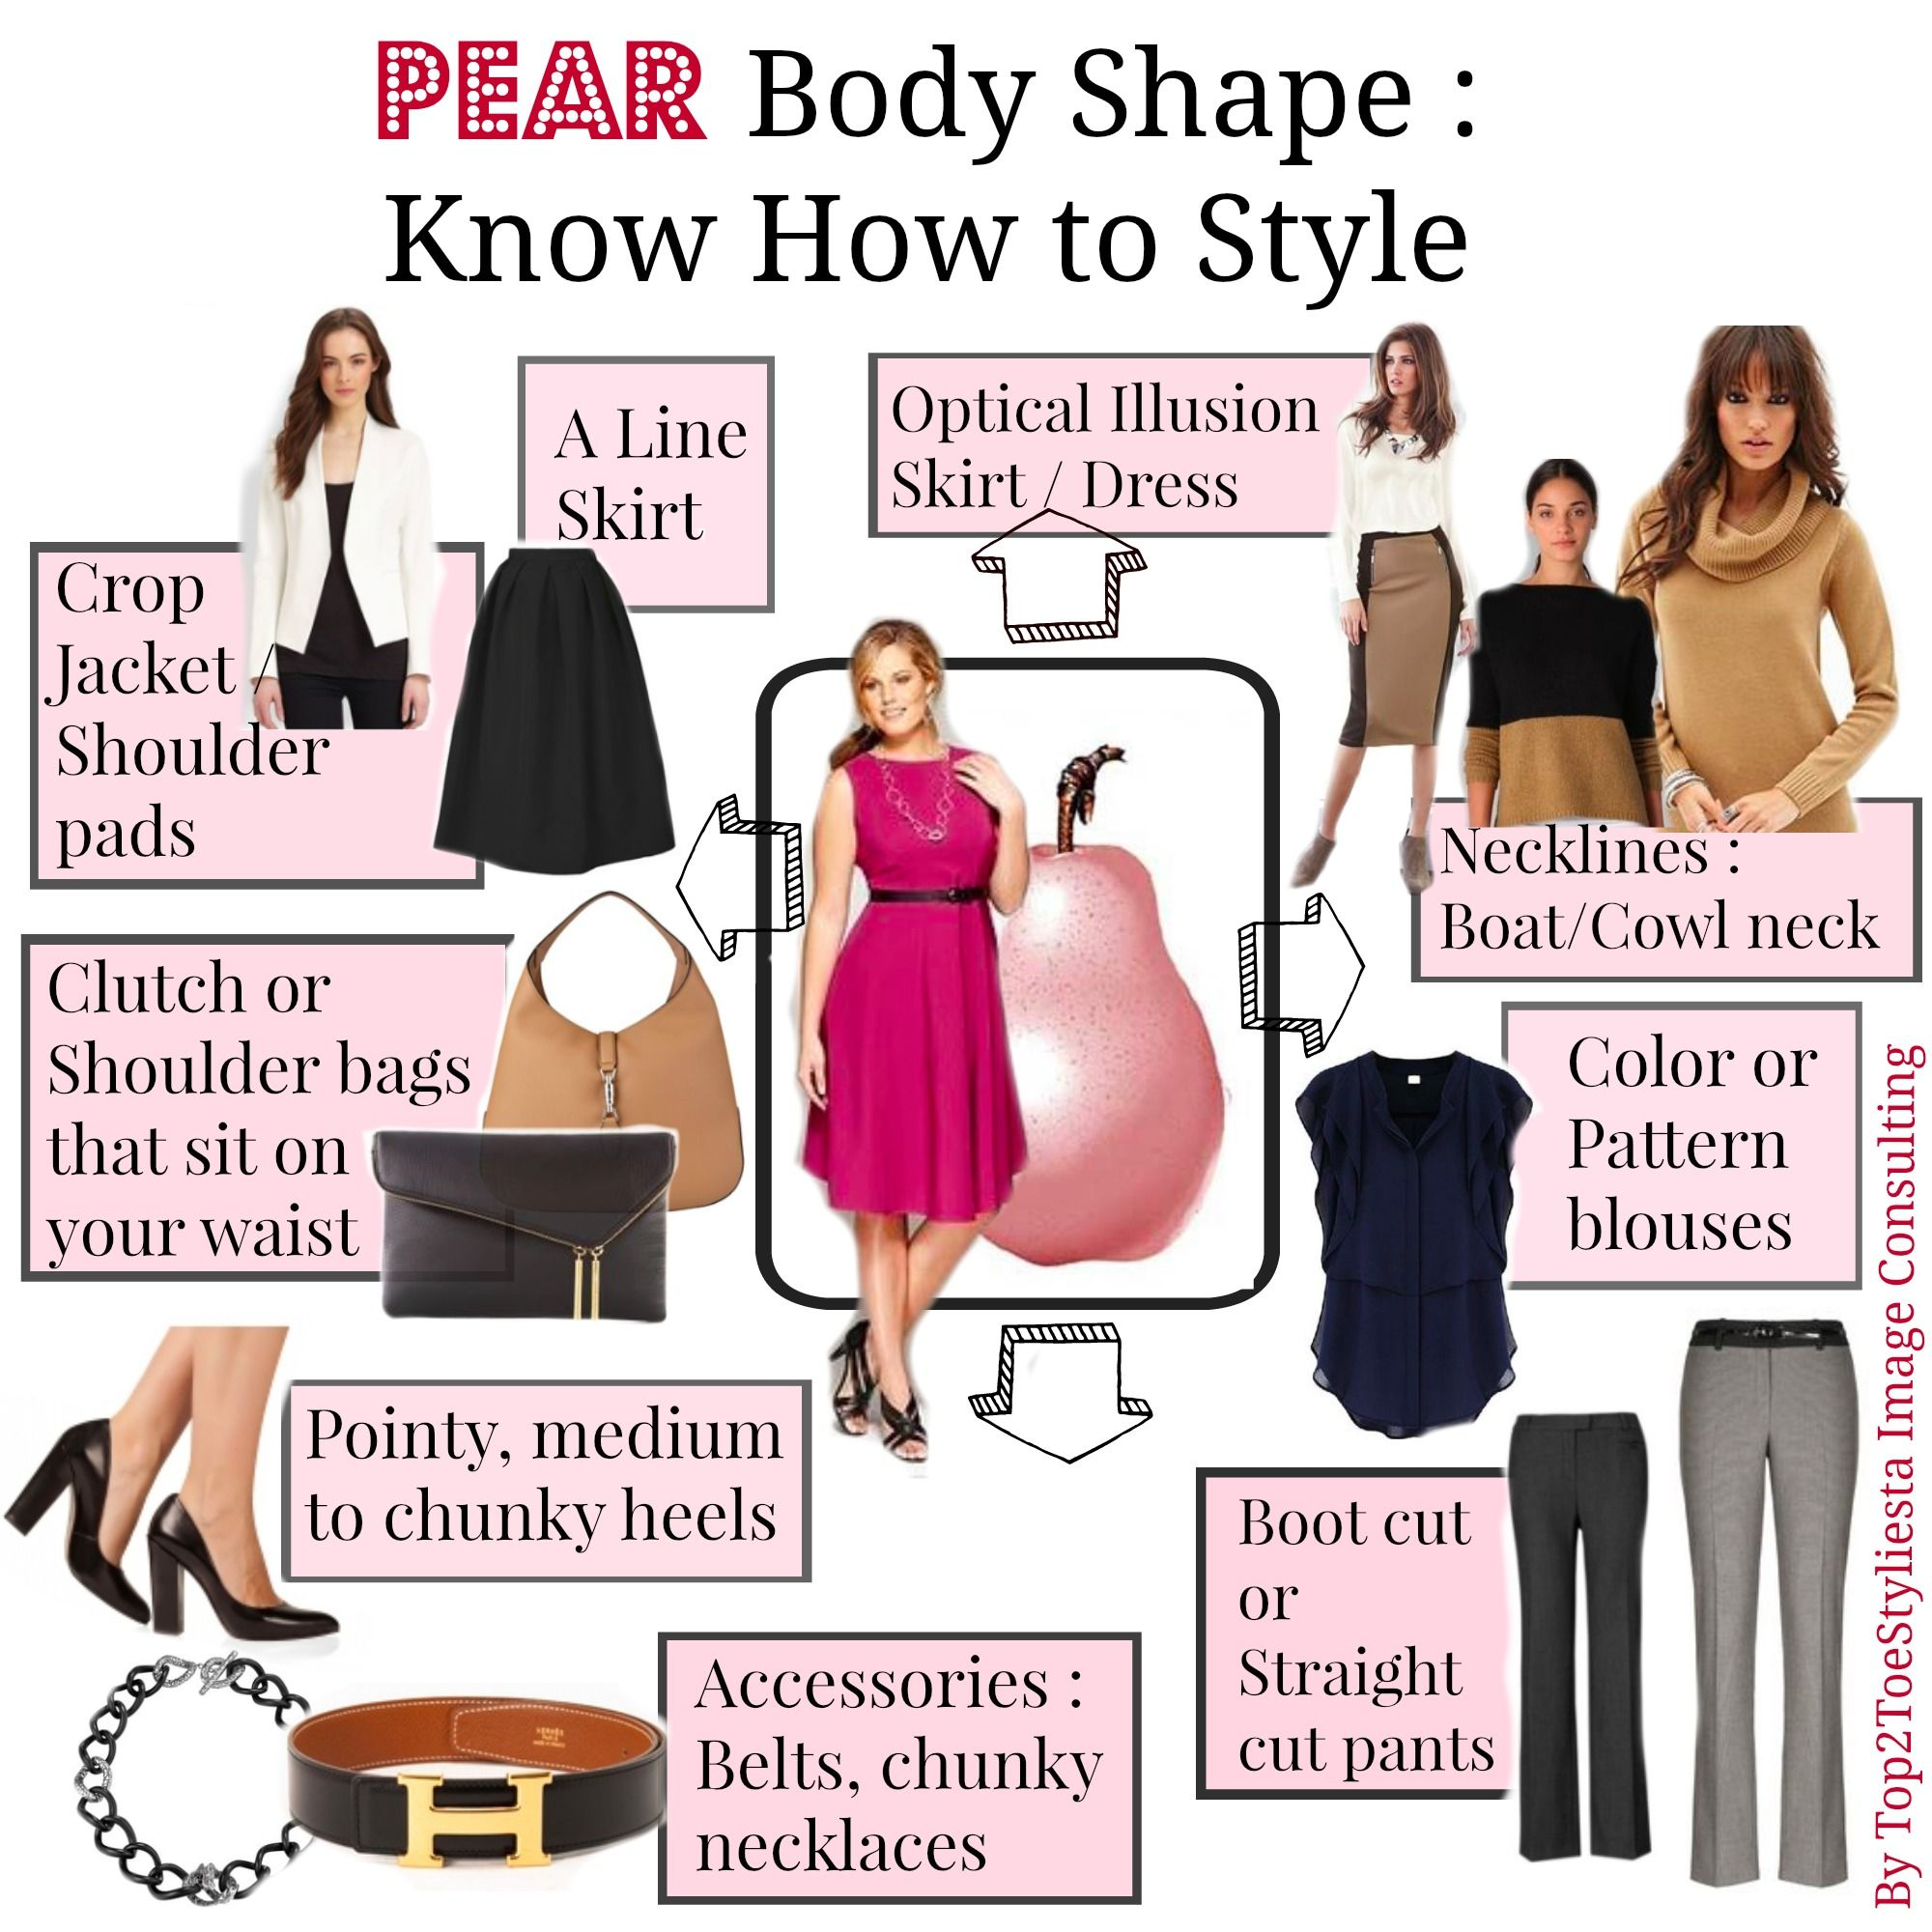 PEAR BODY SHAPE : KNOW HOW TO STYLE!  Here's some quick guide on how to style according to your body shape - Pear.  www.top2toestyliesta.com www.top2toestyliestadotme. wordpress.com